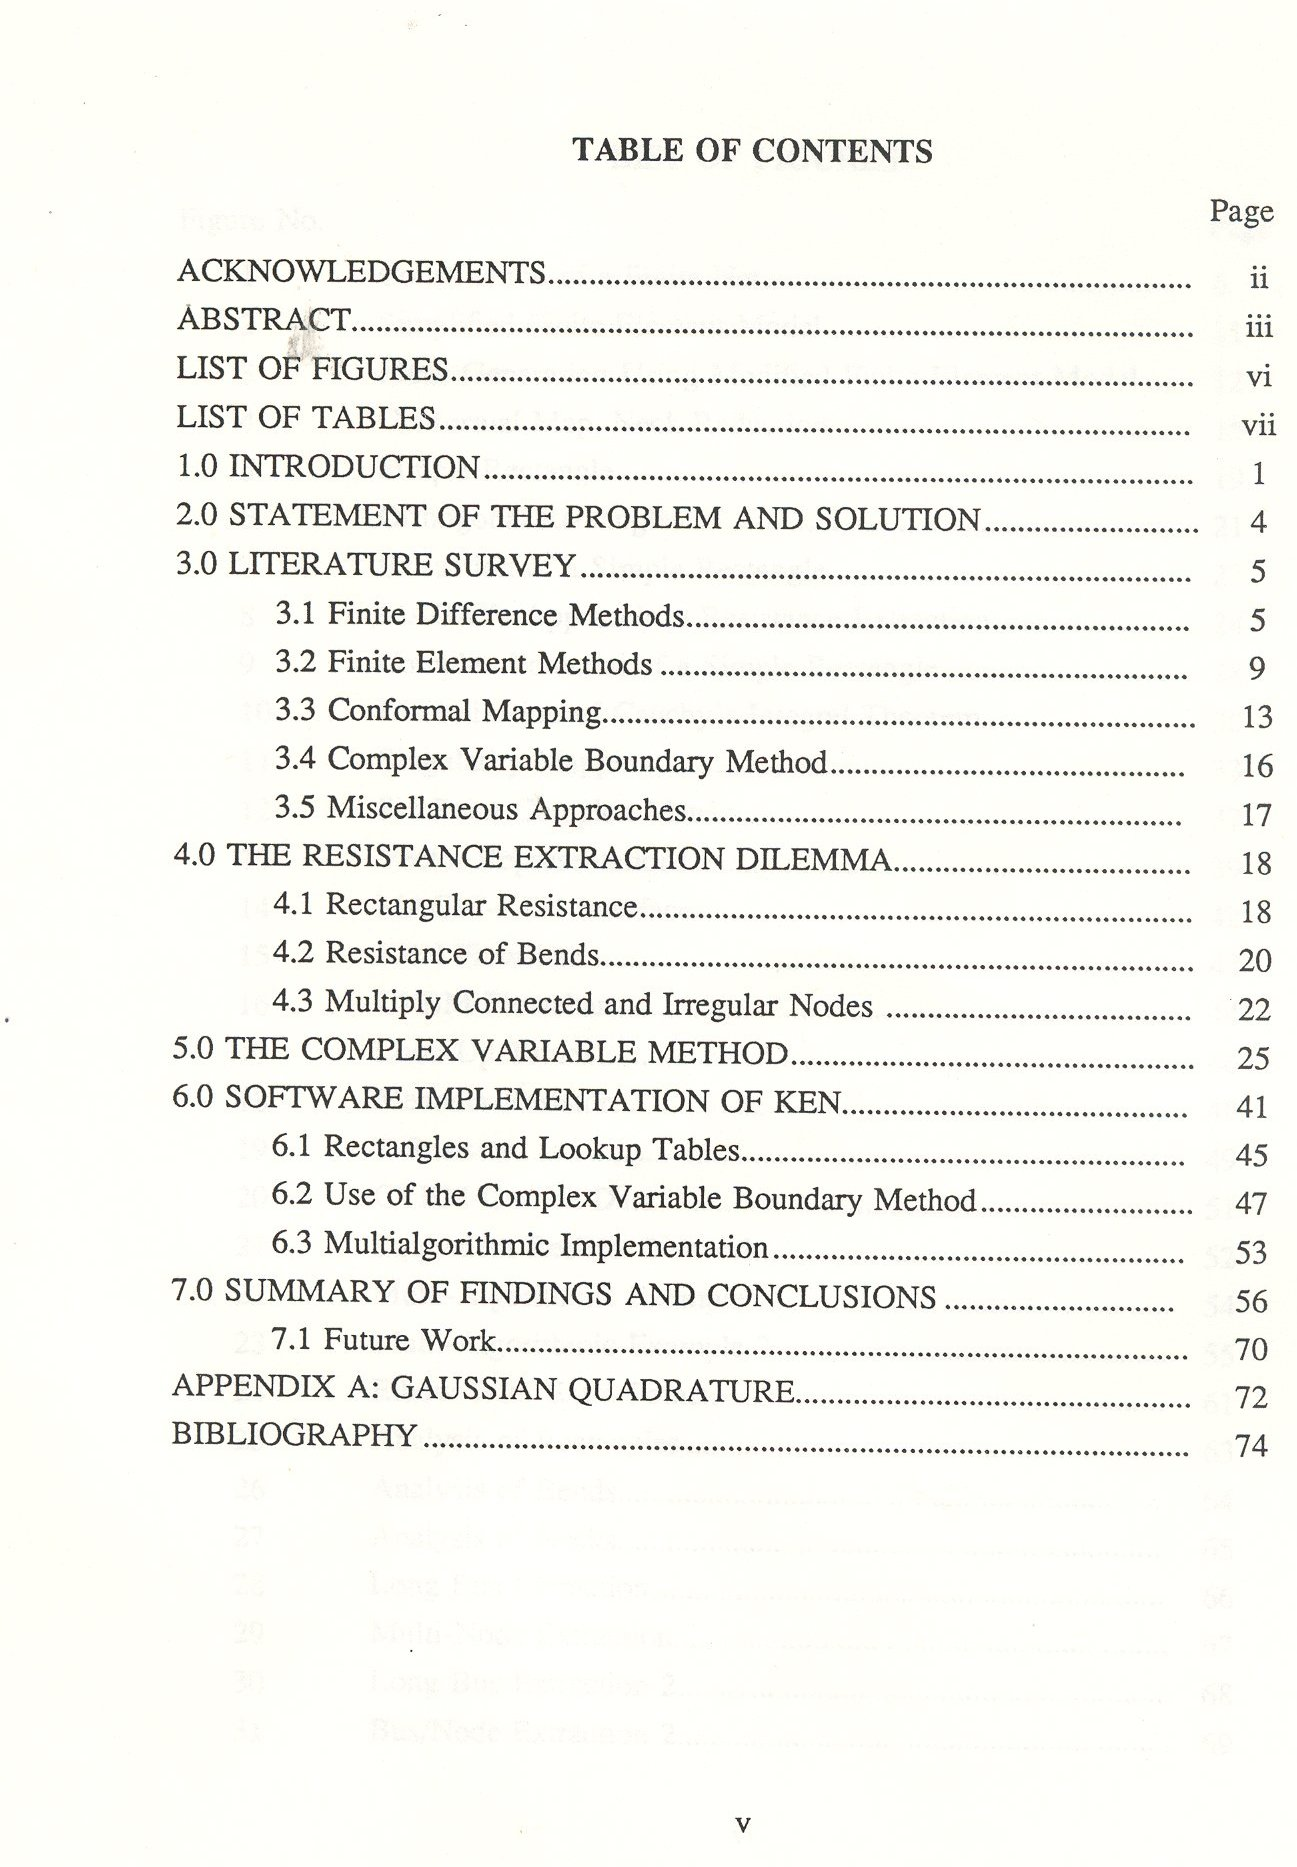 Order of contents for dissertation